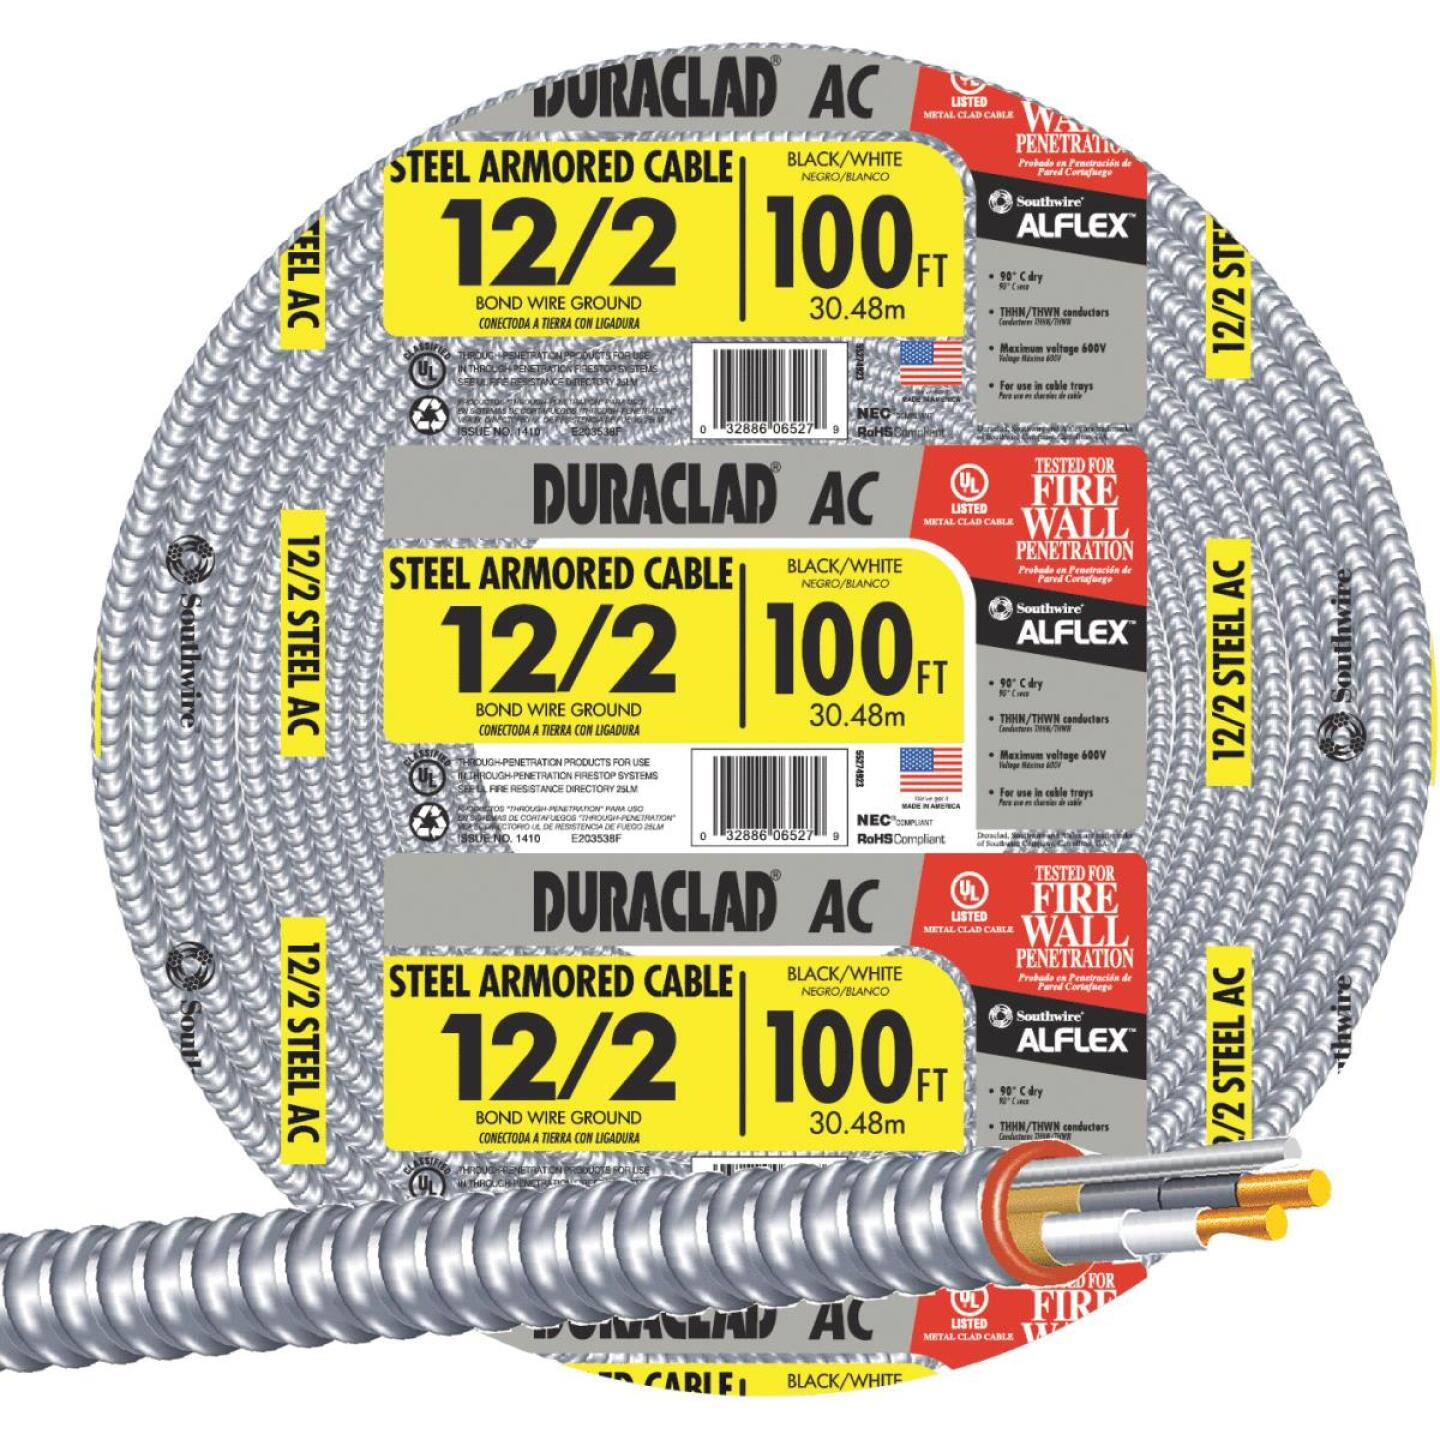 Southwire 100 Ft. 12/2 AC Armored Cable Image 1